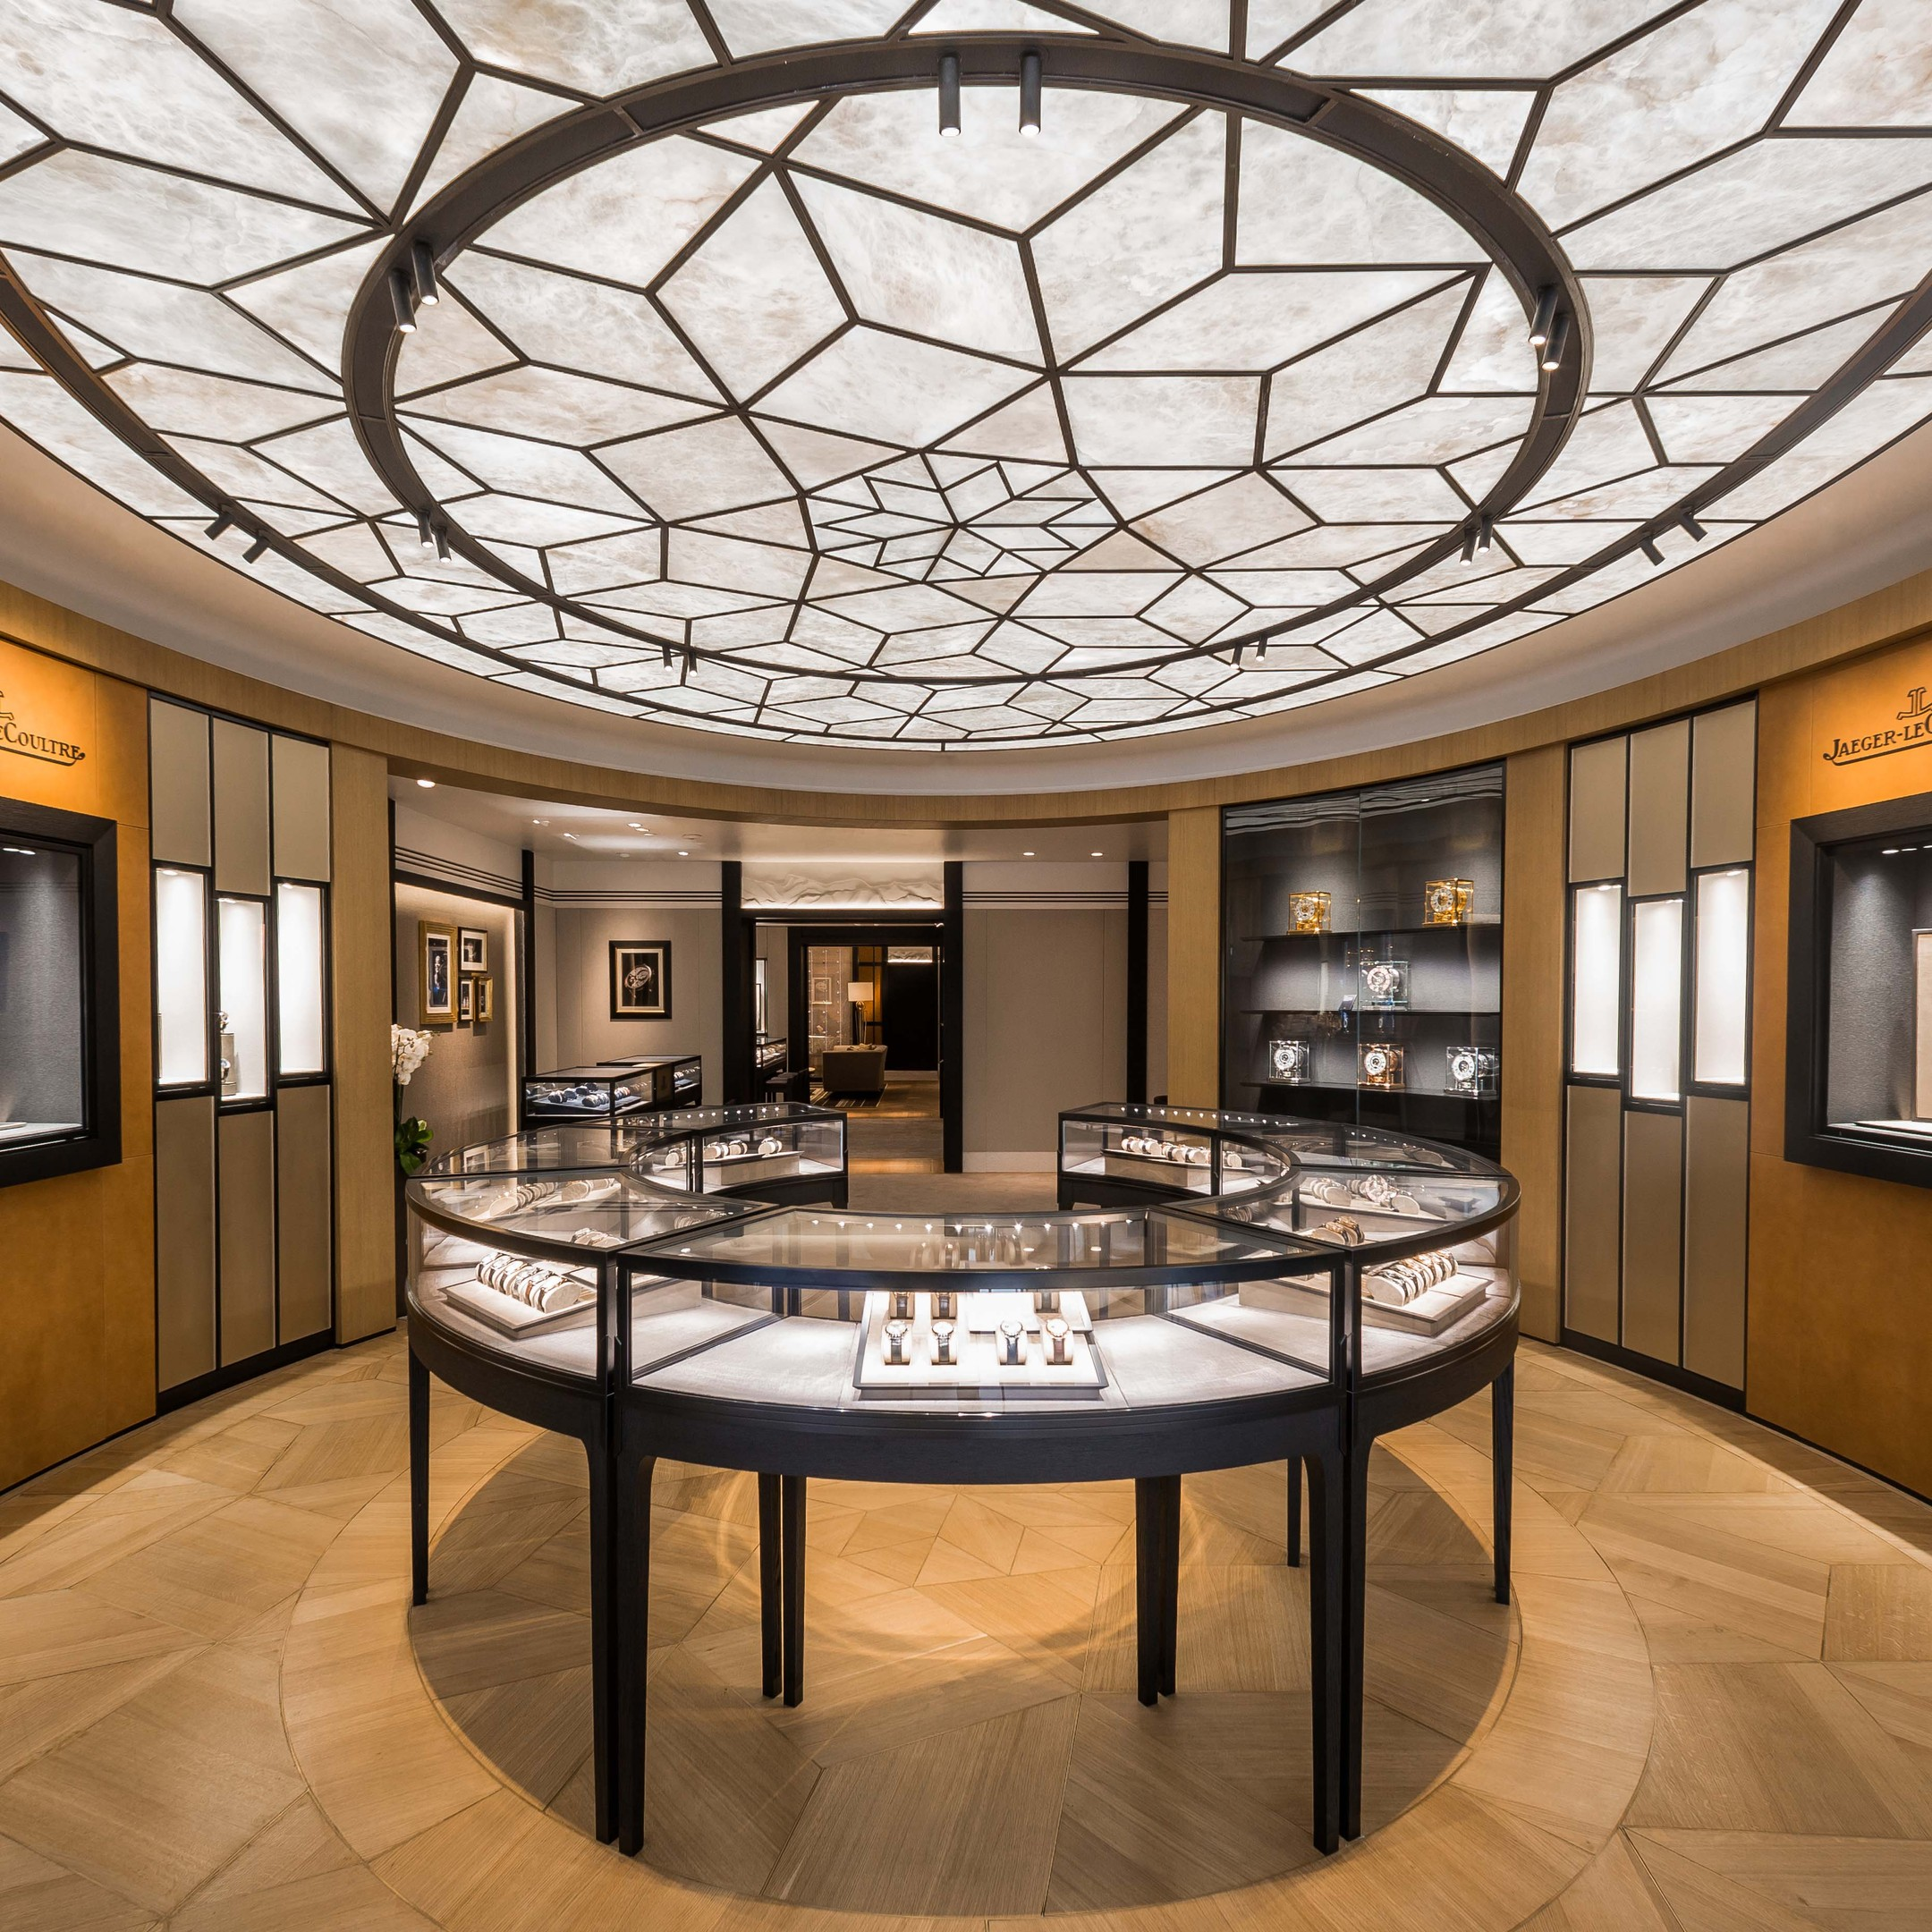 The arrival of Jaeger-LeCoultre's flagship store on London's Old Bond Street confirms Mayfair's status as a global Mecca for lovers of luxury watches.